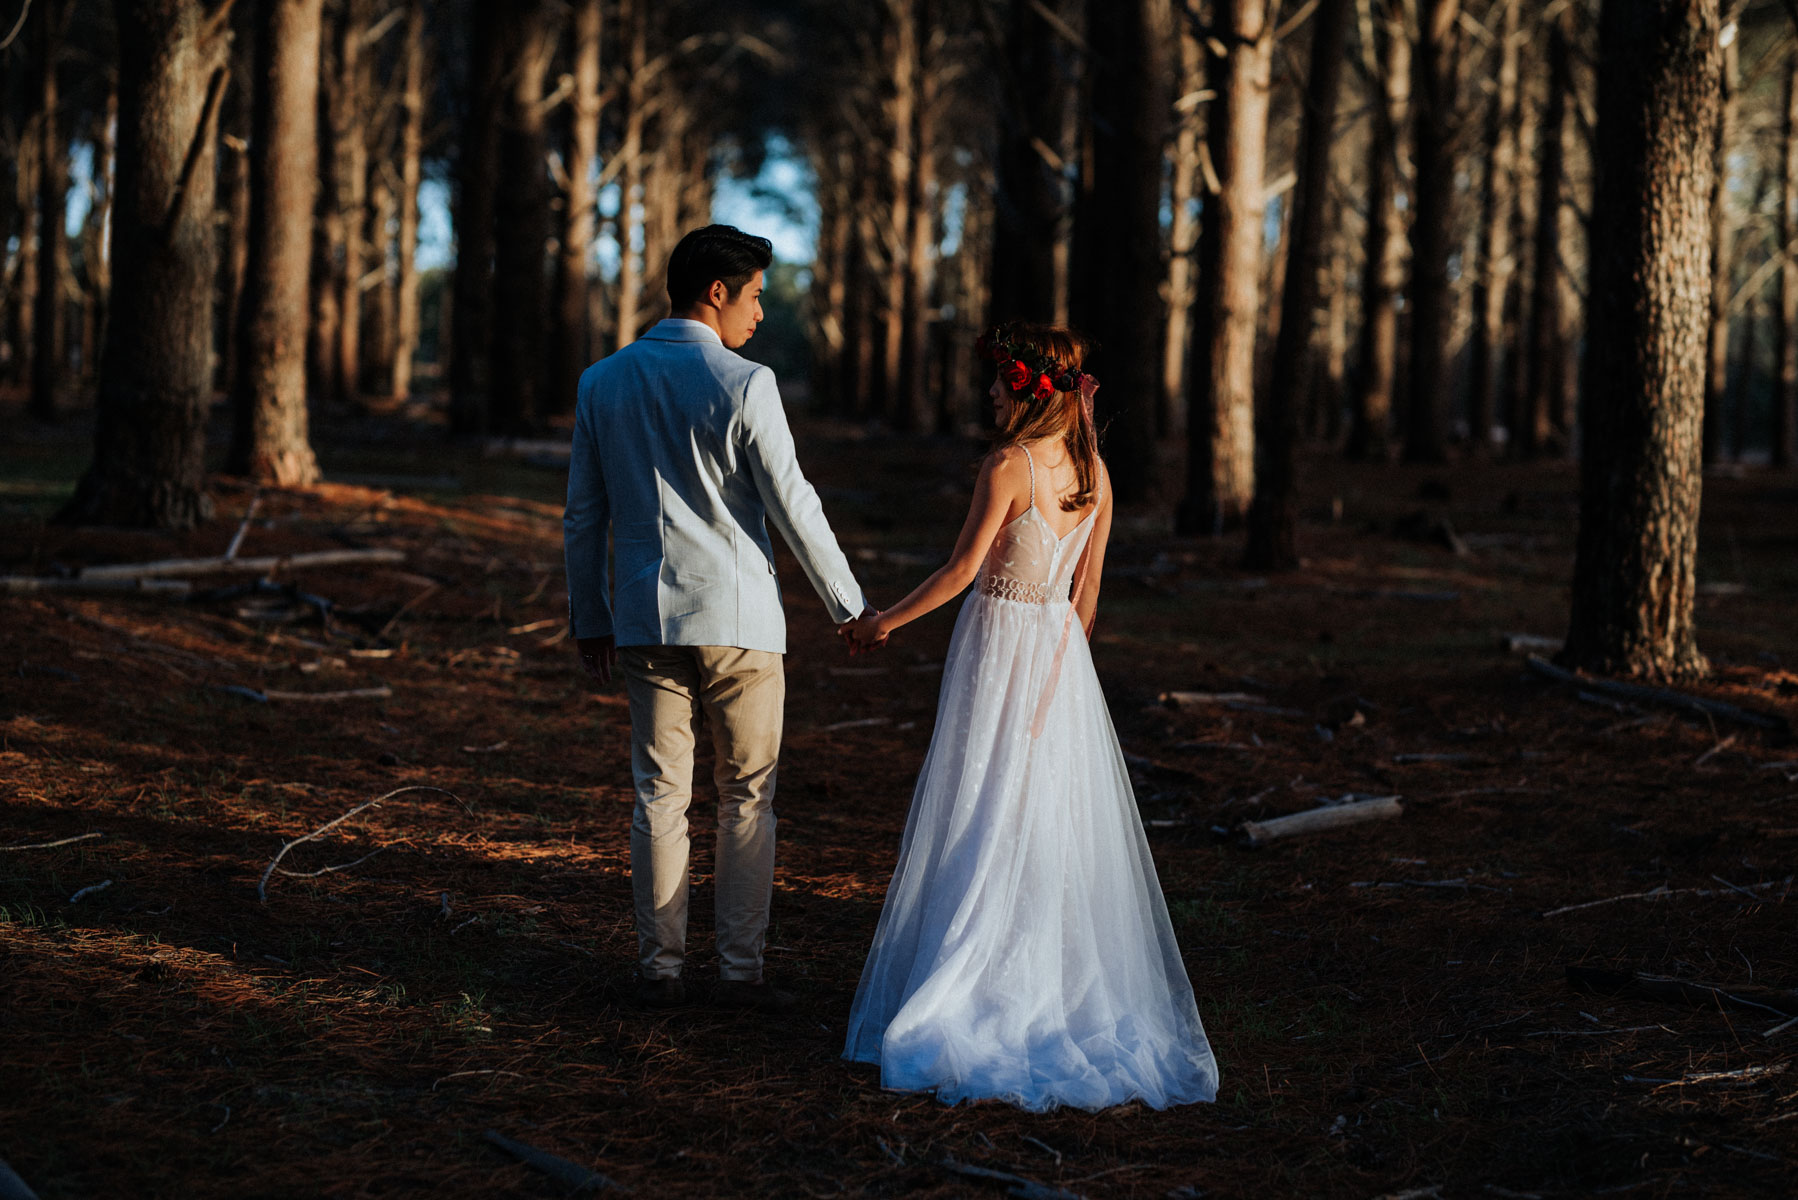 james-julene-forest-elopement-perth-35.JPG